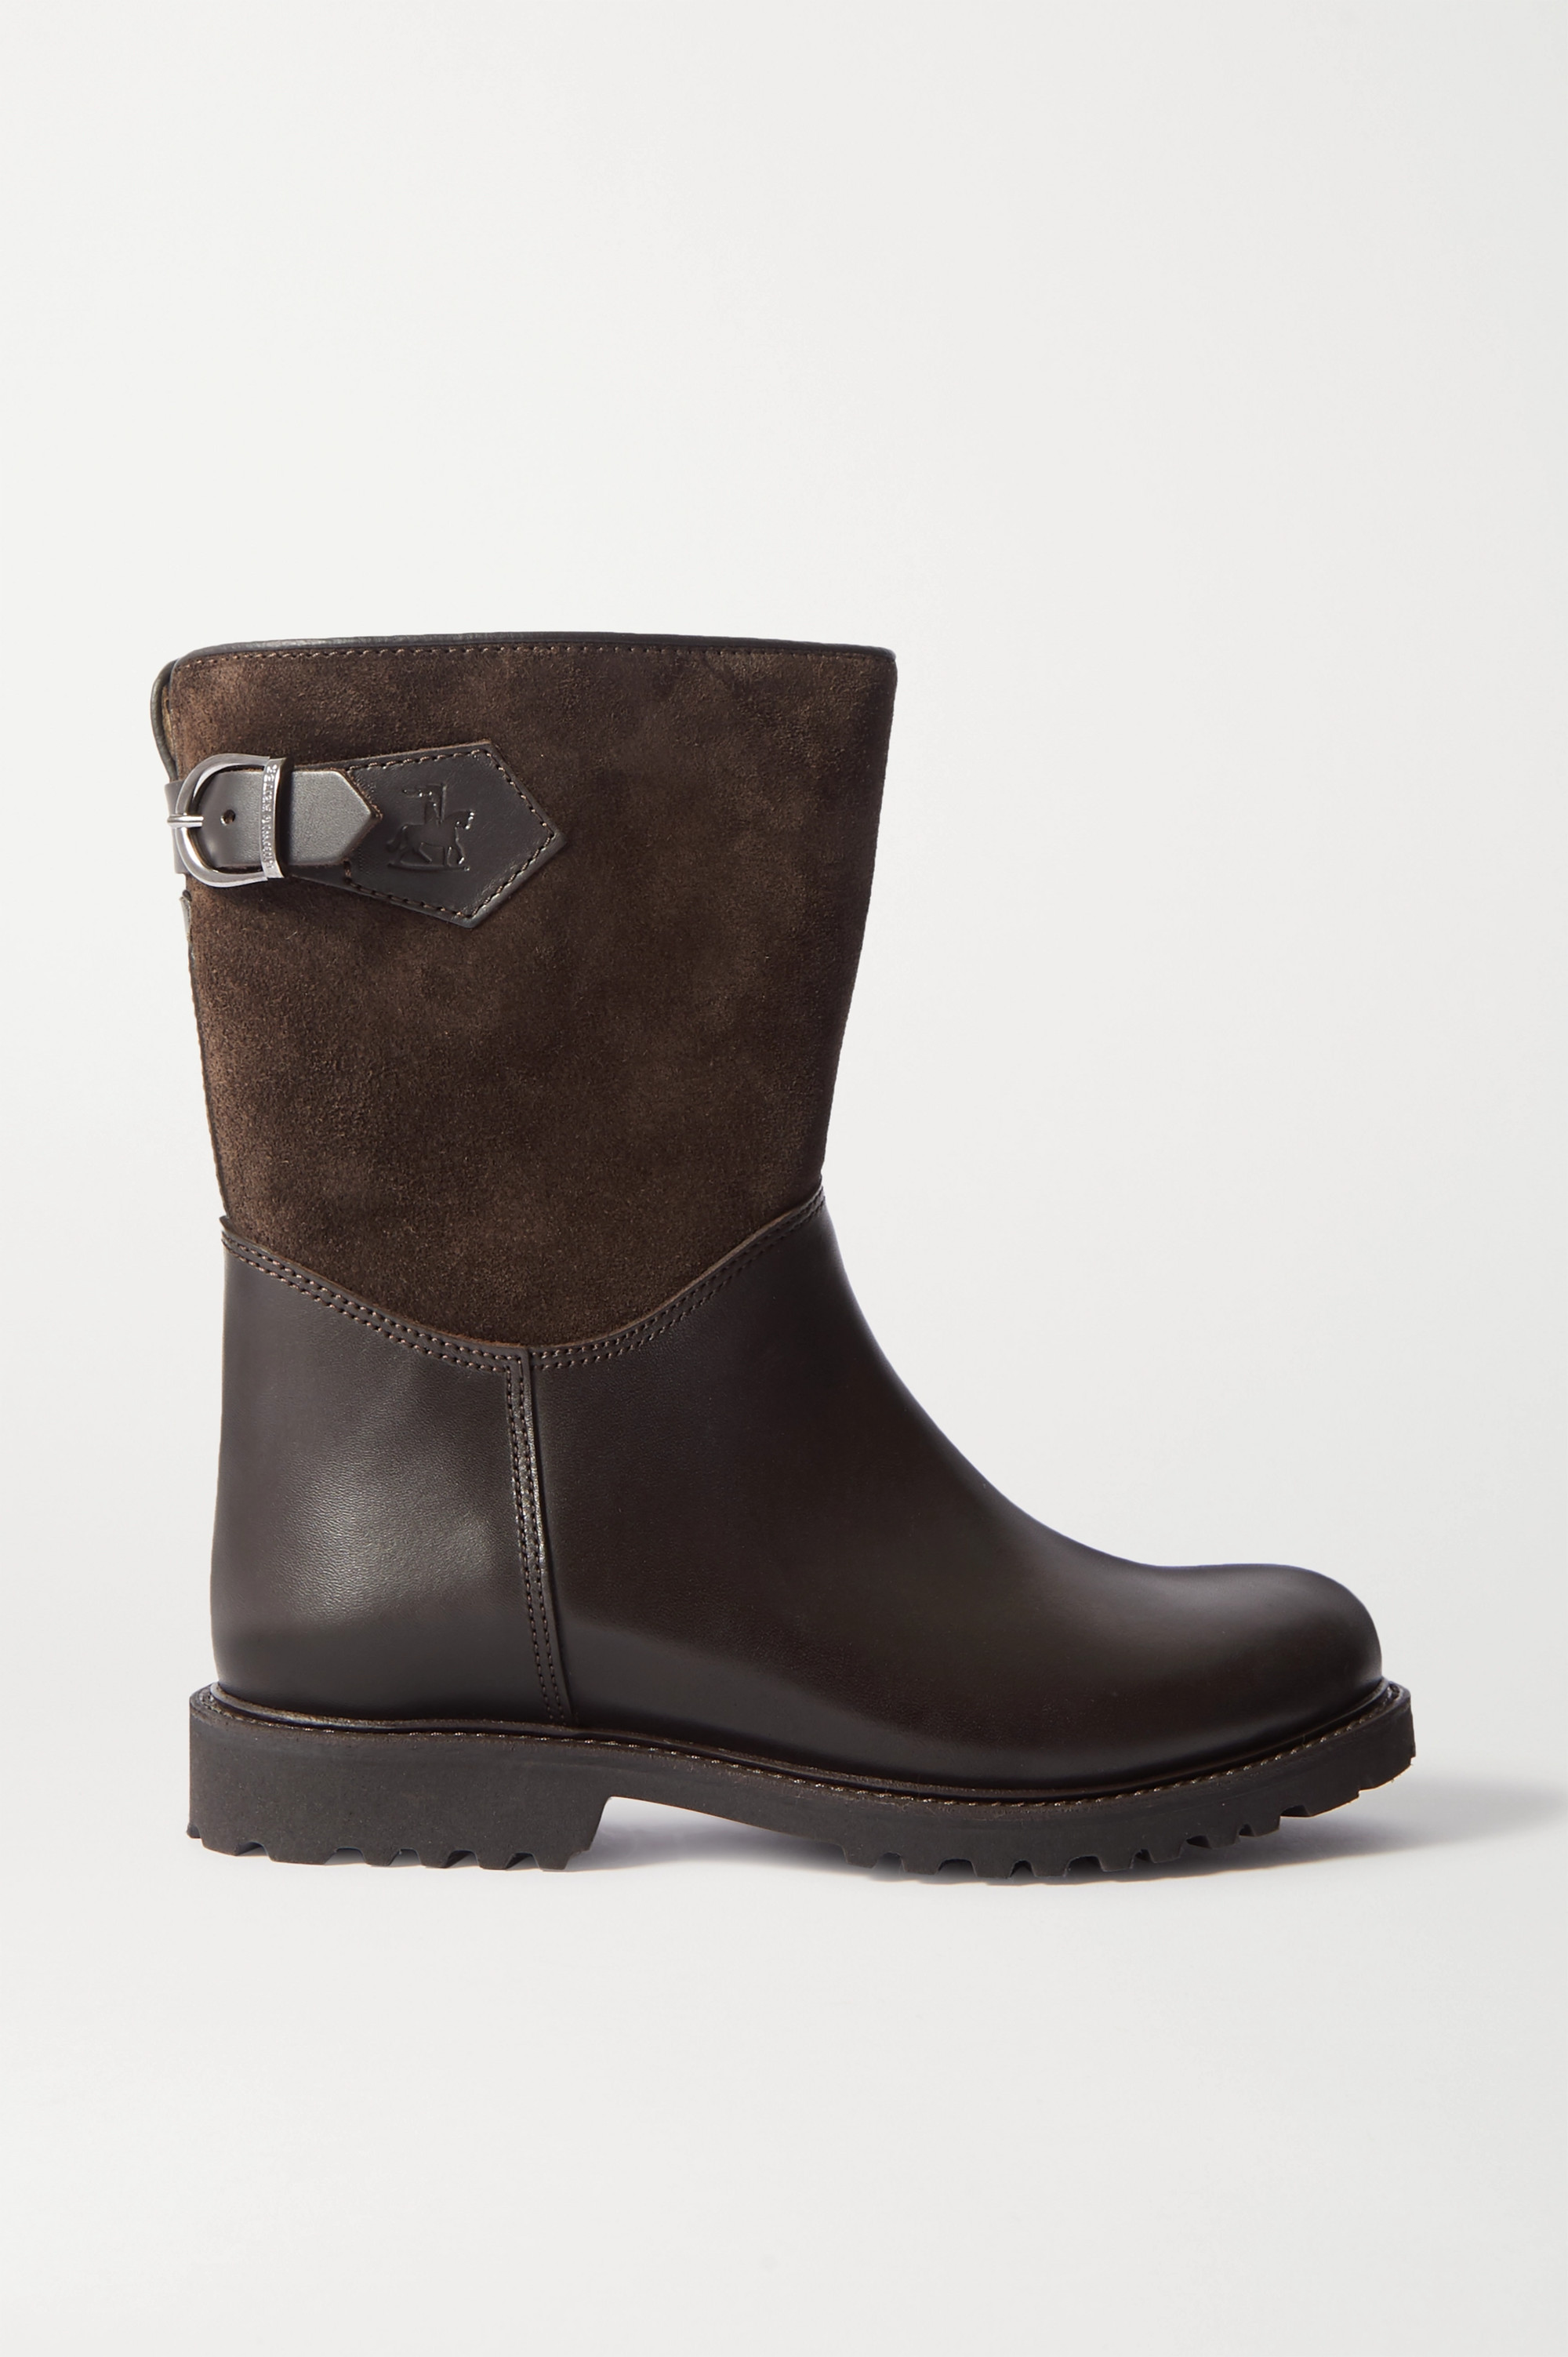 Ludwig Reiter Sennerin shearling-lined leather and suede ankle boots